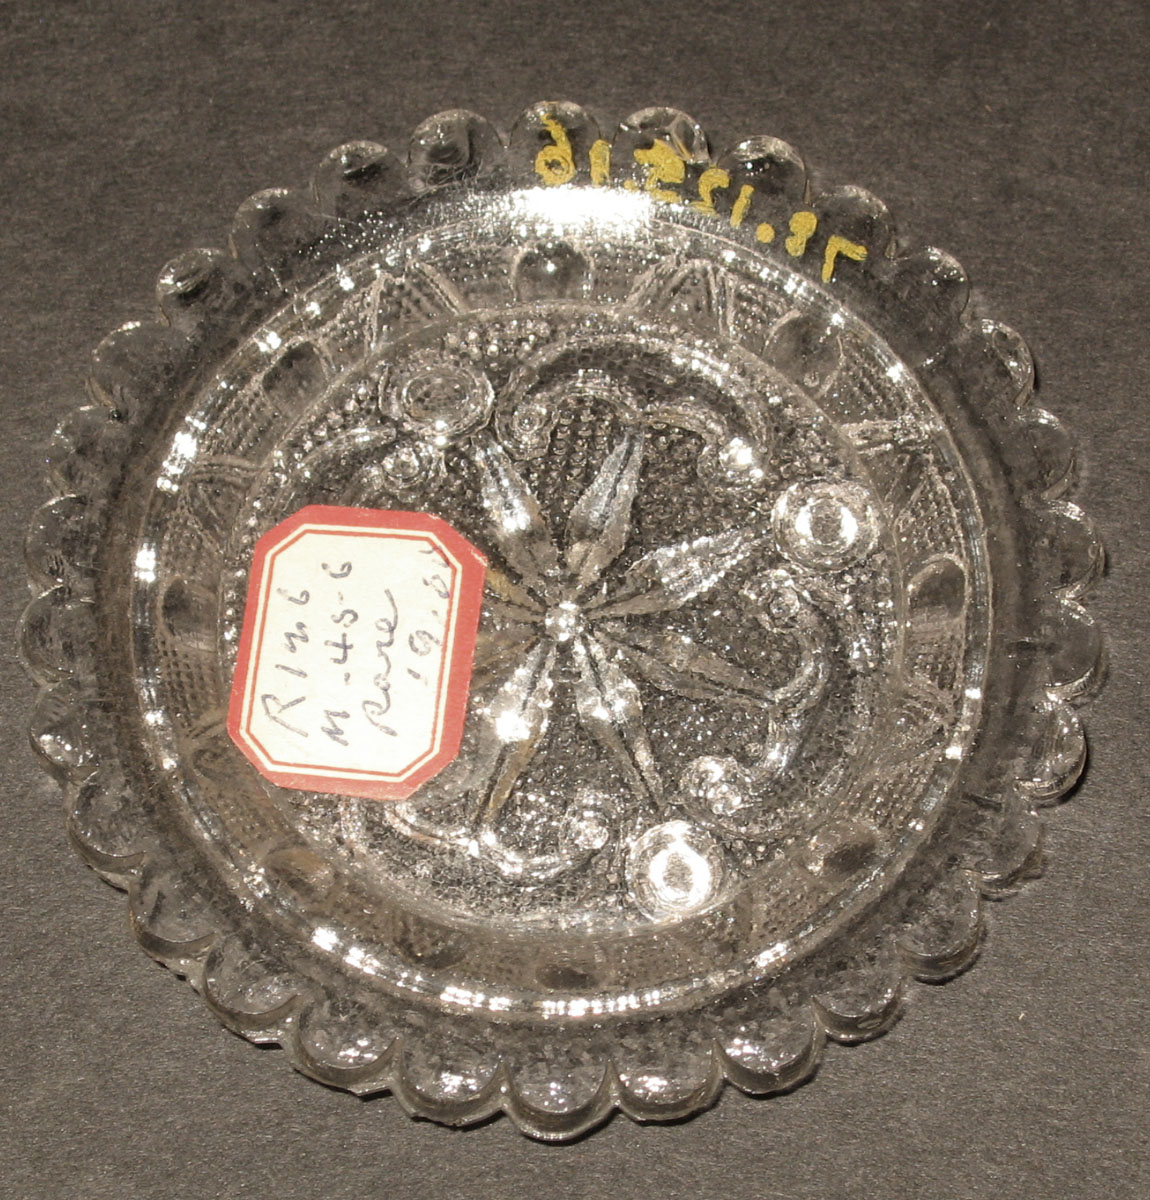 1978.0125.016 Glass cup plate